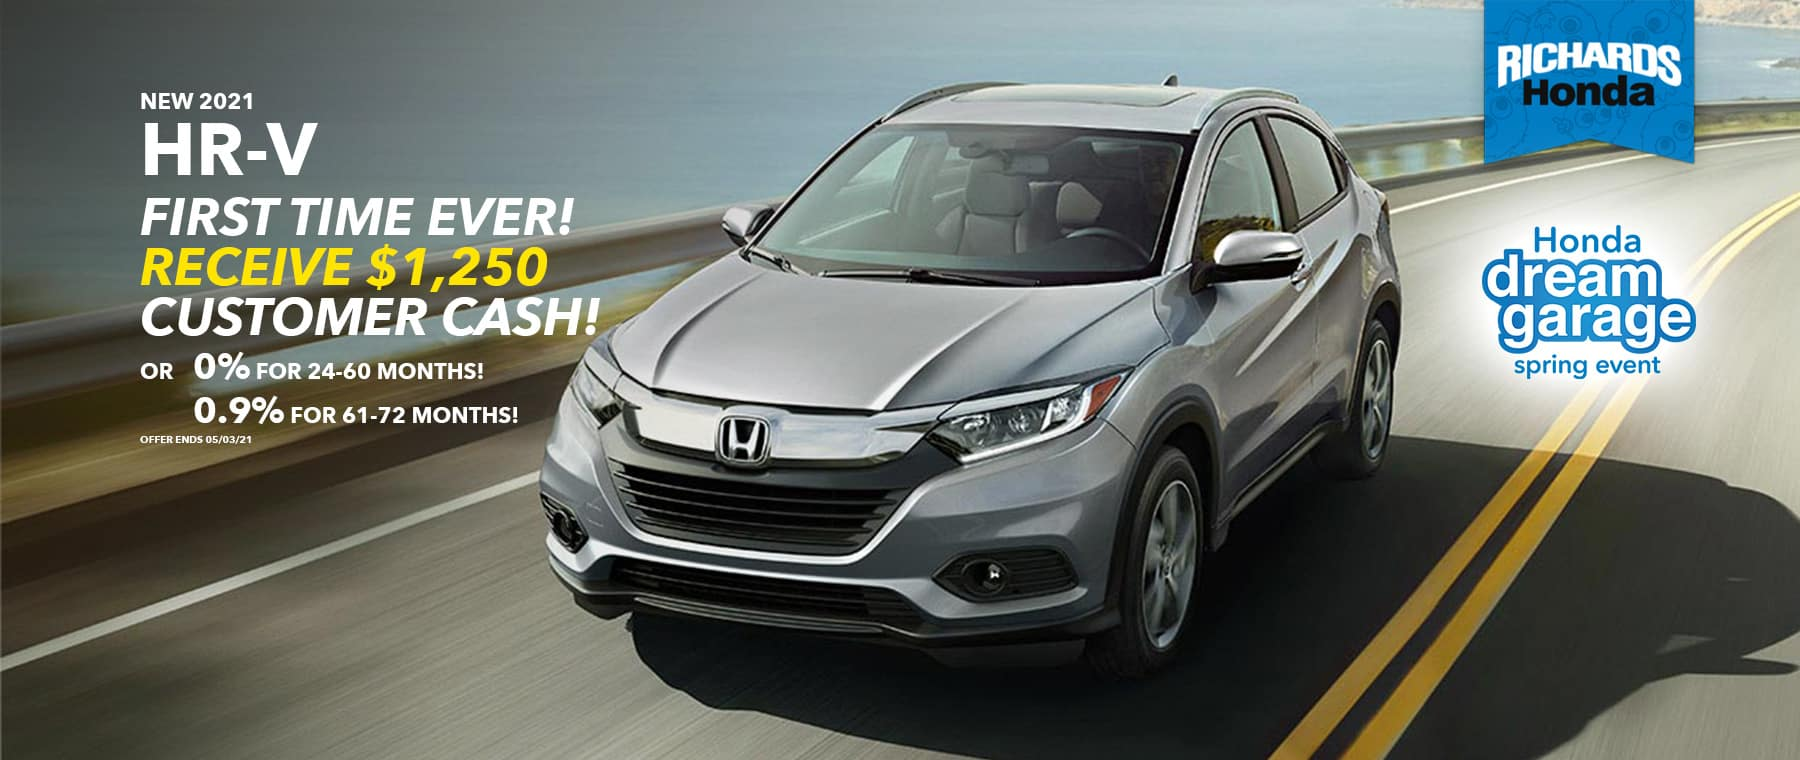 New HRV Special